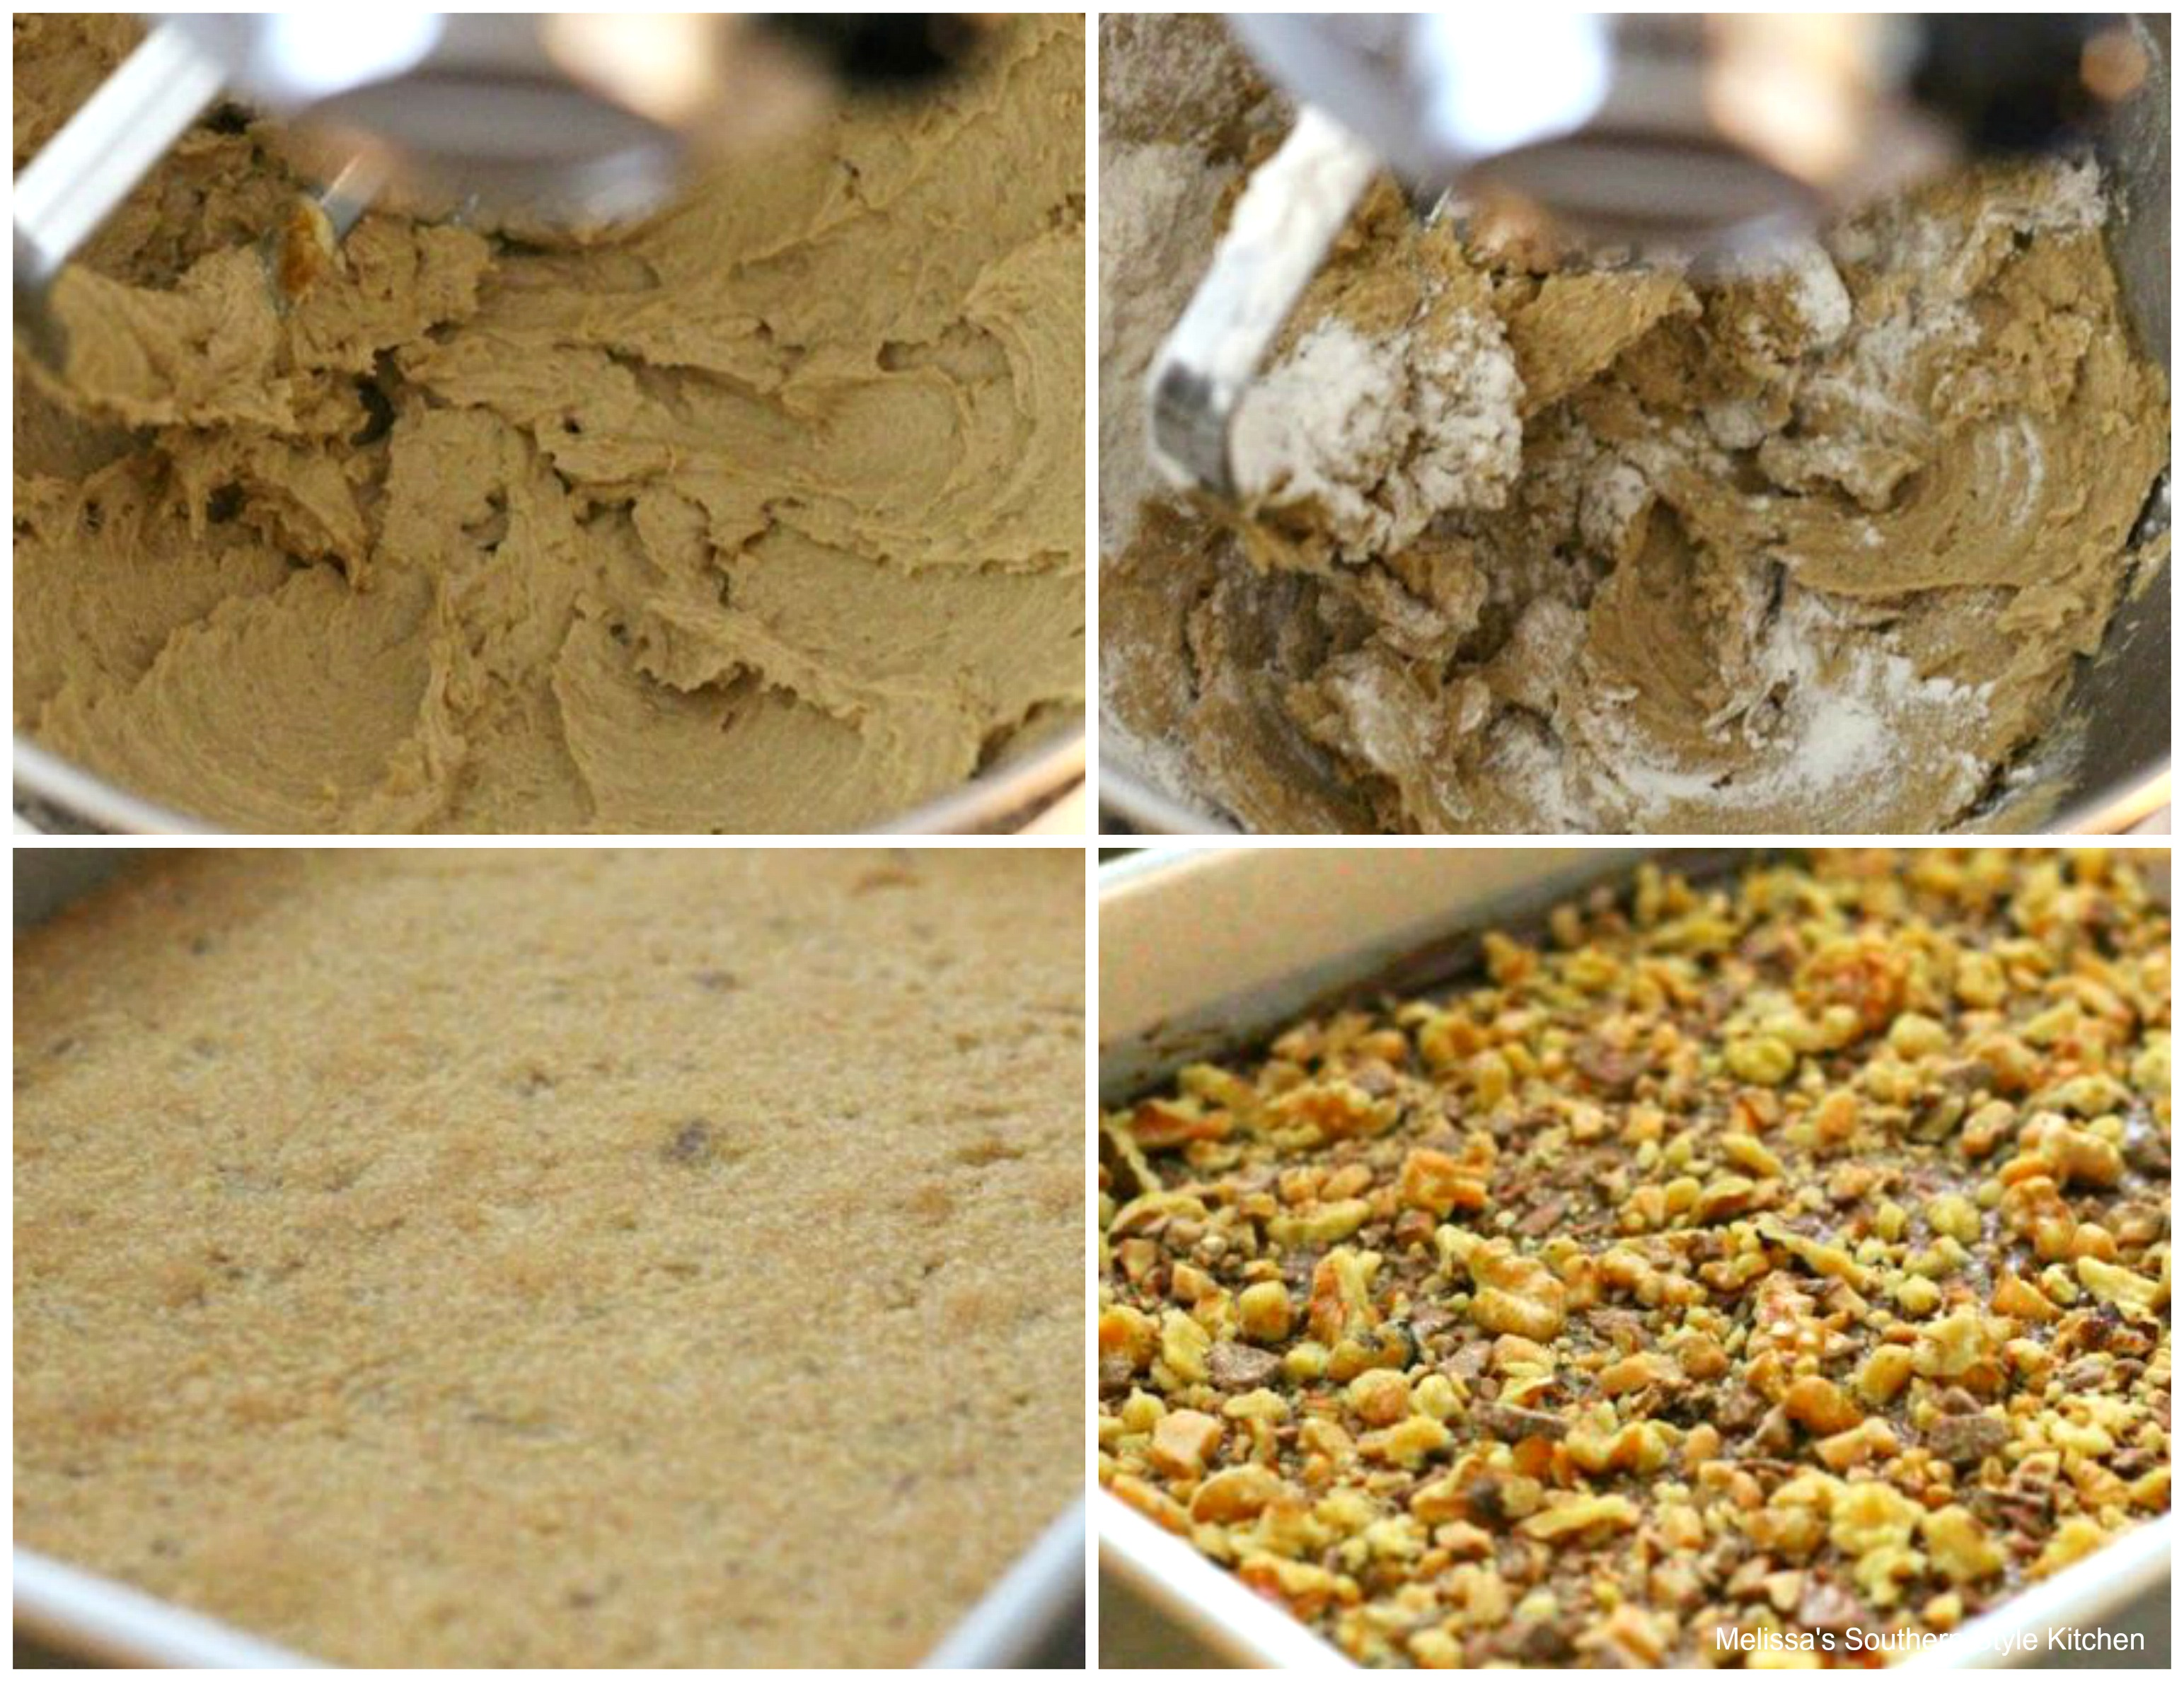 Step-by-step preparation images and ingredient to make Salted Chocolate Walnut Toffee Bars